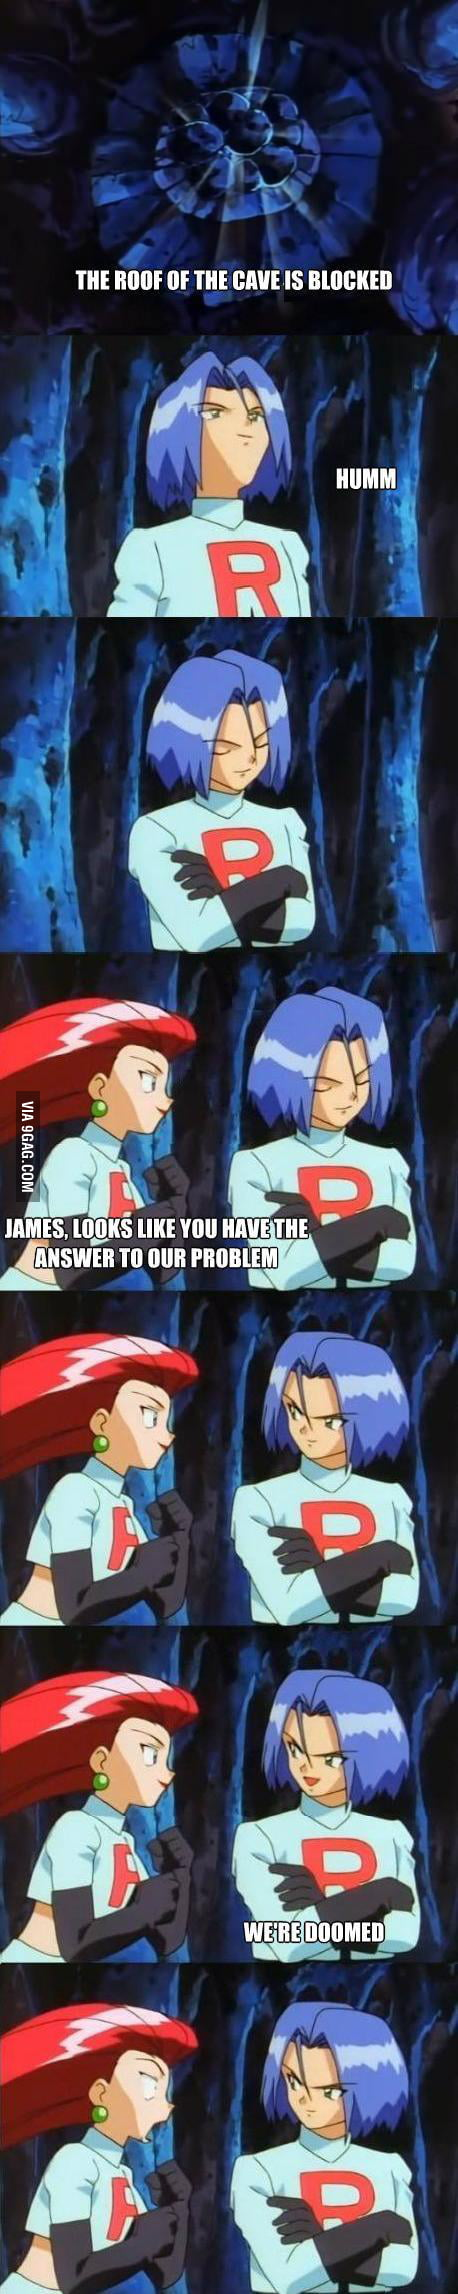 James trolling Jessie